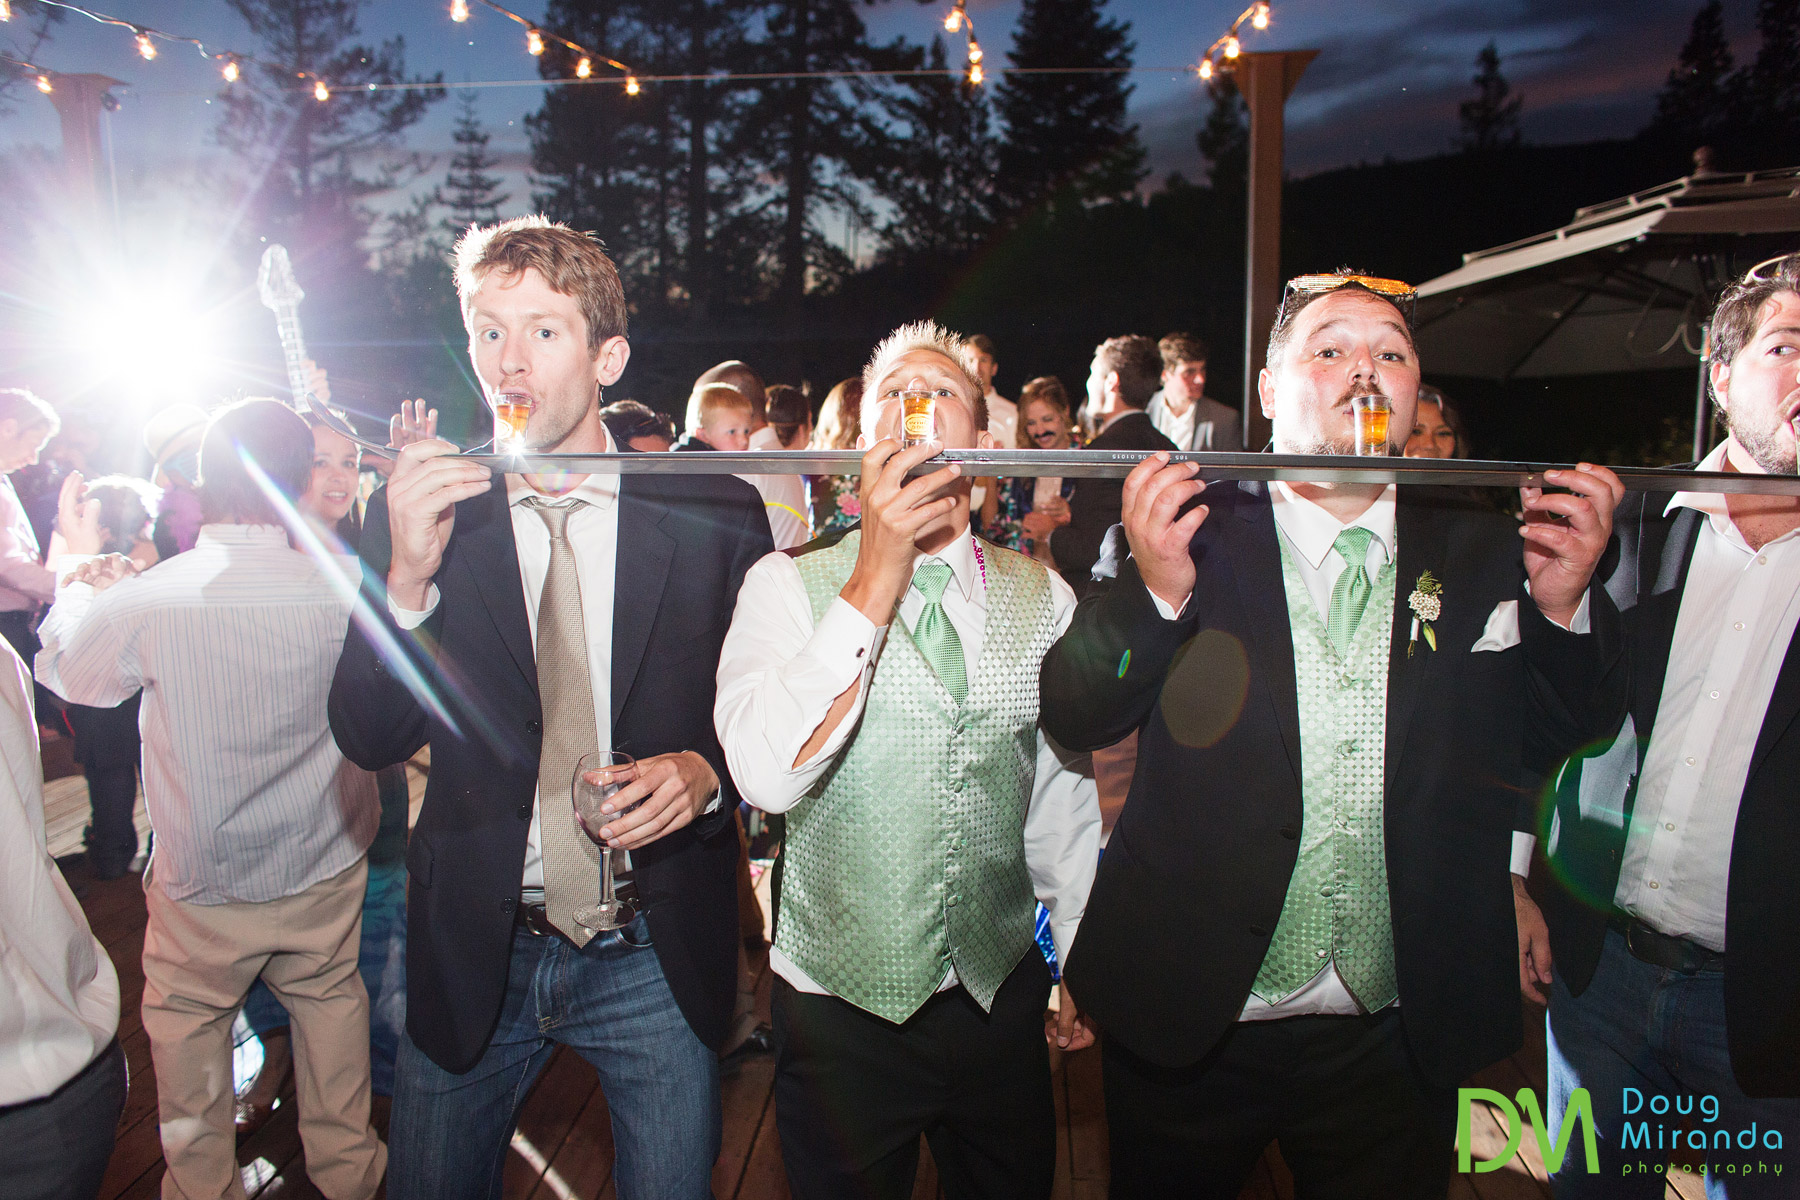 shot skis at a donner pass wedding